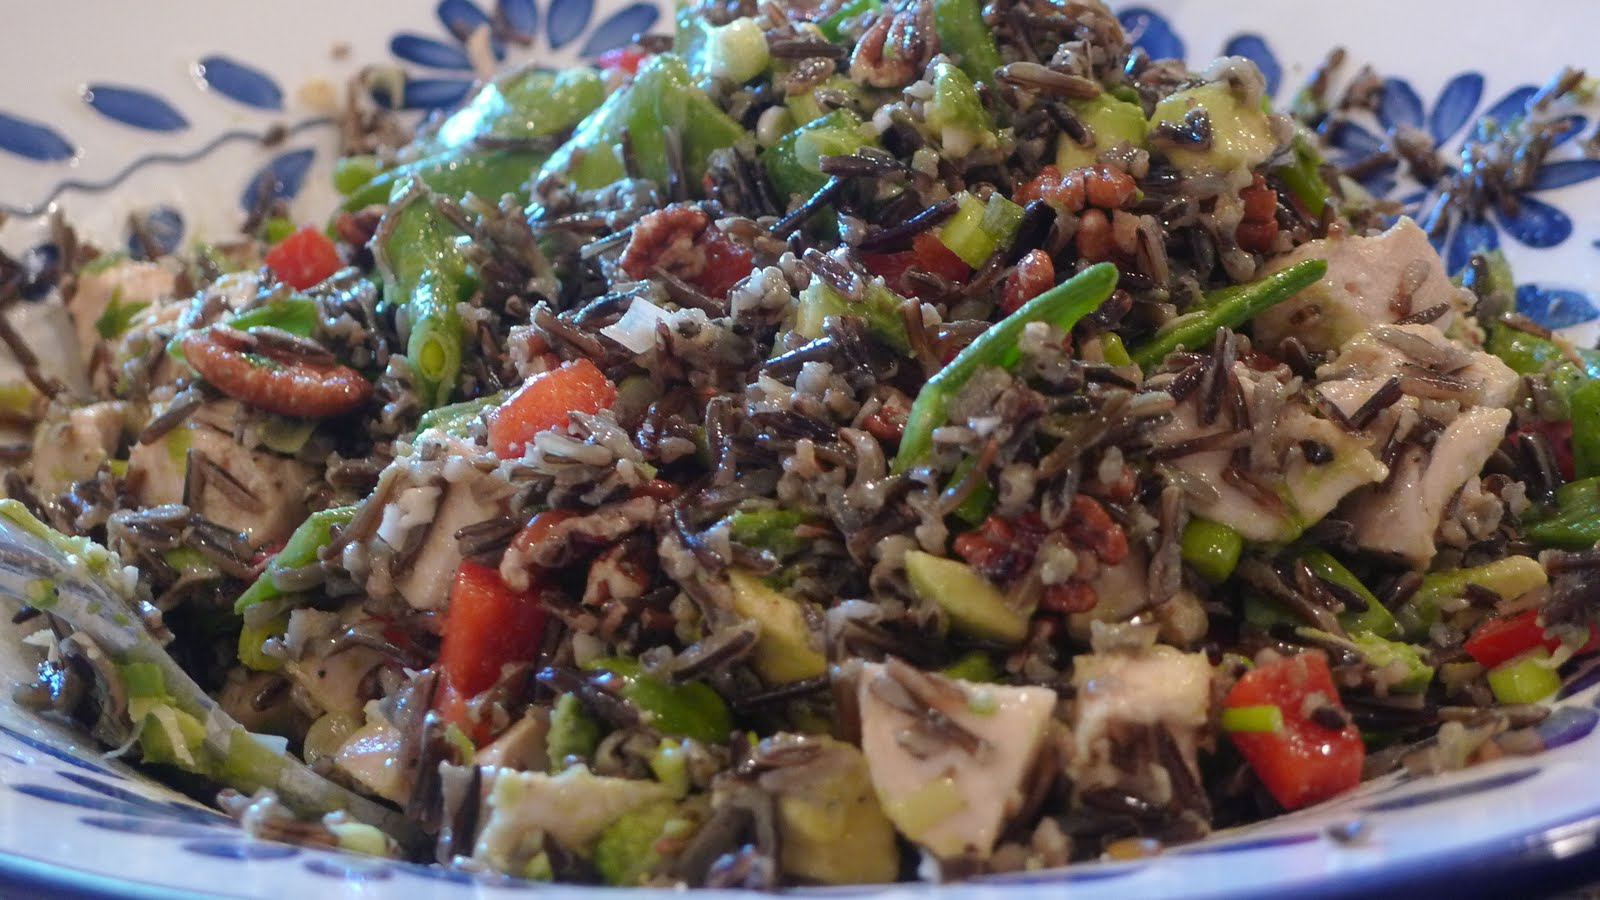 siriously delicious: Trish's Wild Rice Salad